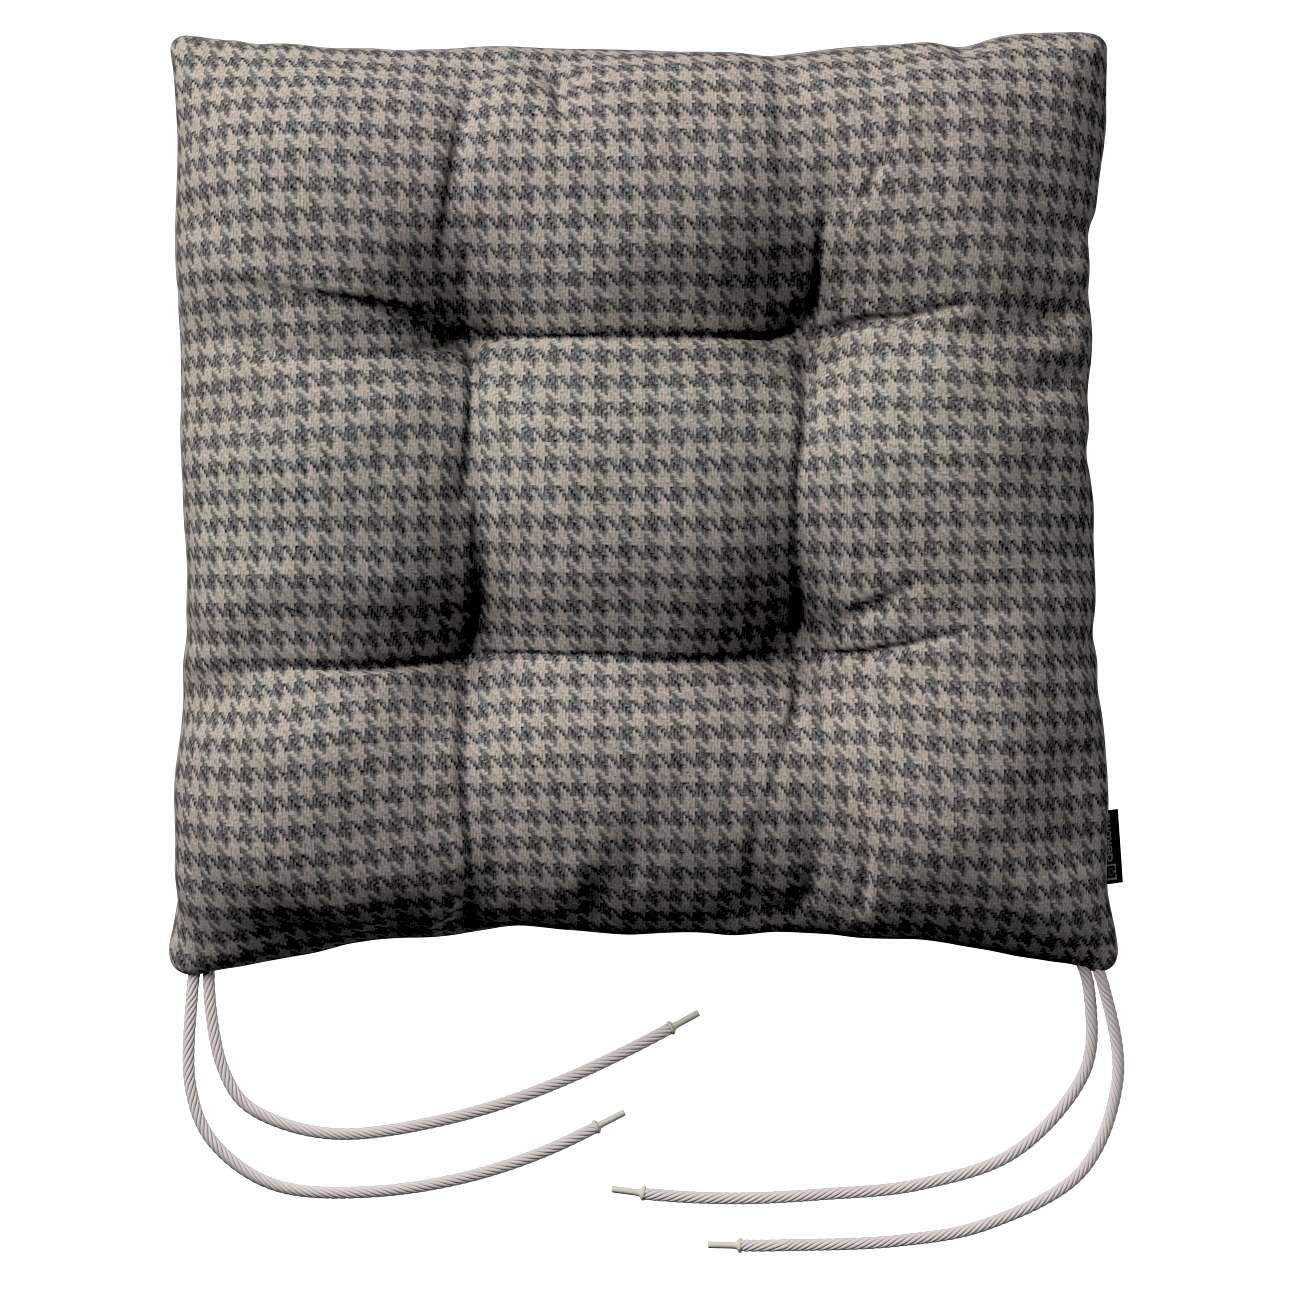 Jack seat pad with ties in collection Edinburgh, fabric: 703-14